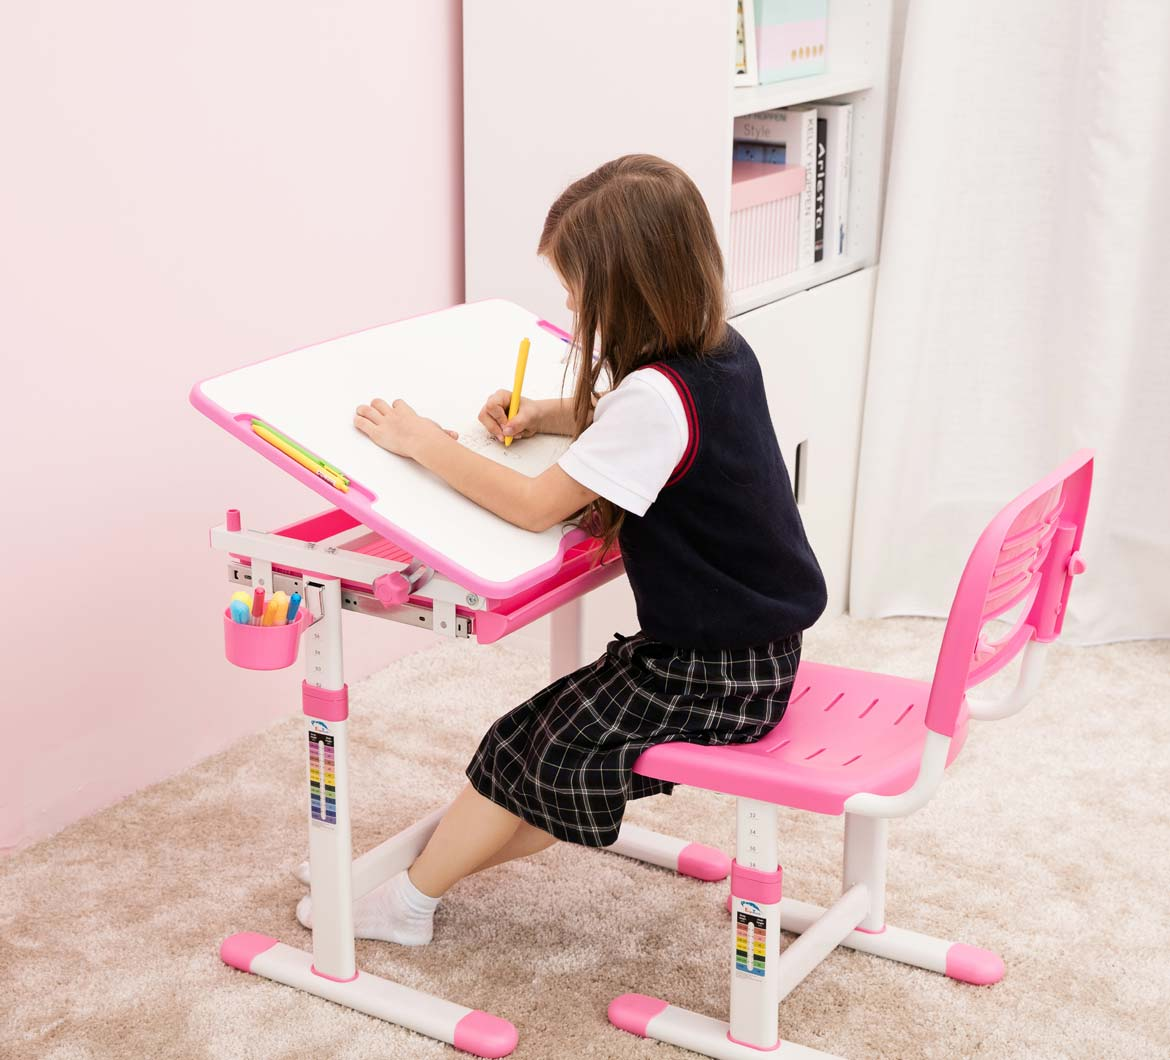 height-adjustable-kids-desk-chair-ergonomic-pink-table-for-girls-portfolio-mini-pink-3